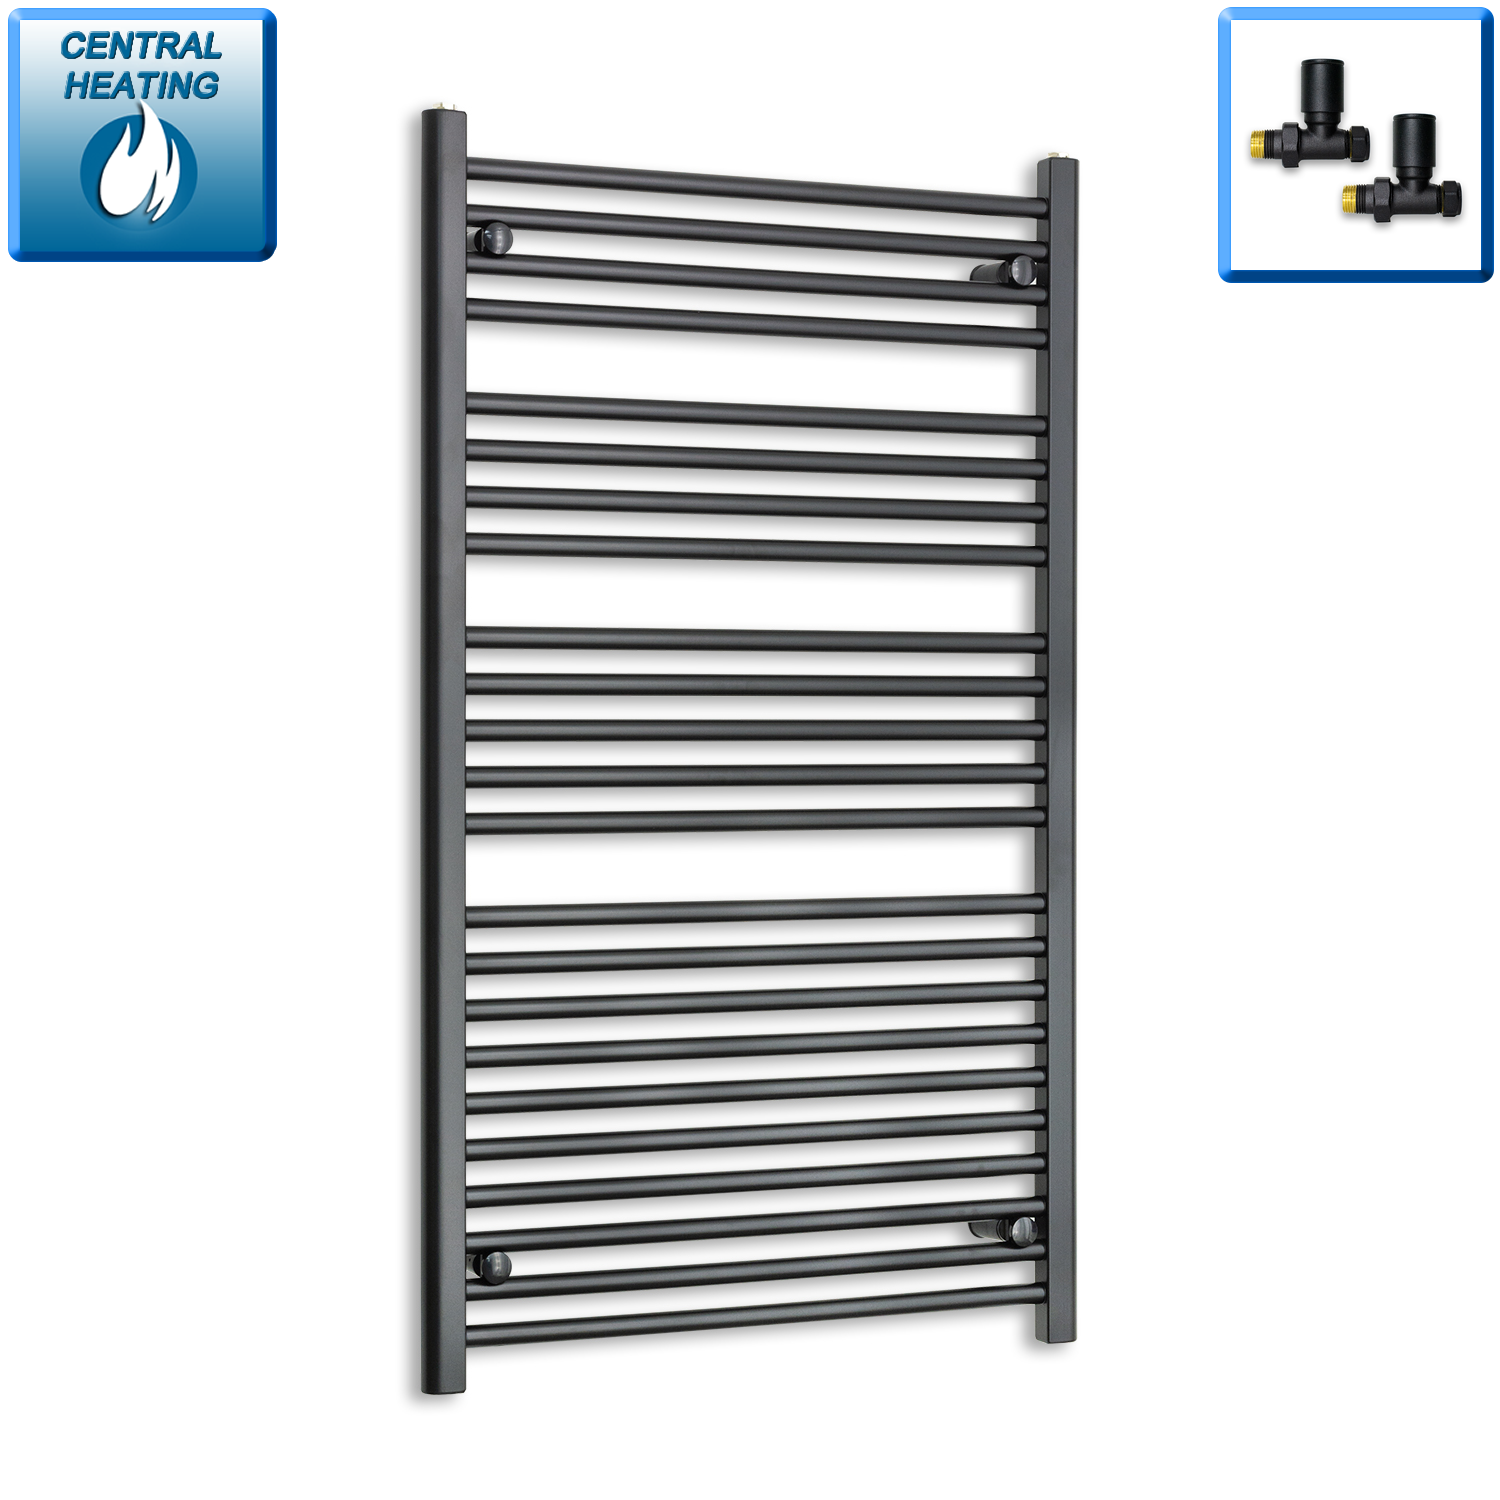 700mm Wide 1200mm High Black Towel Rail Radiator With Straight Valve